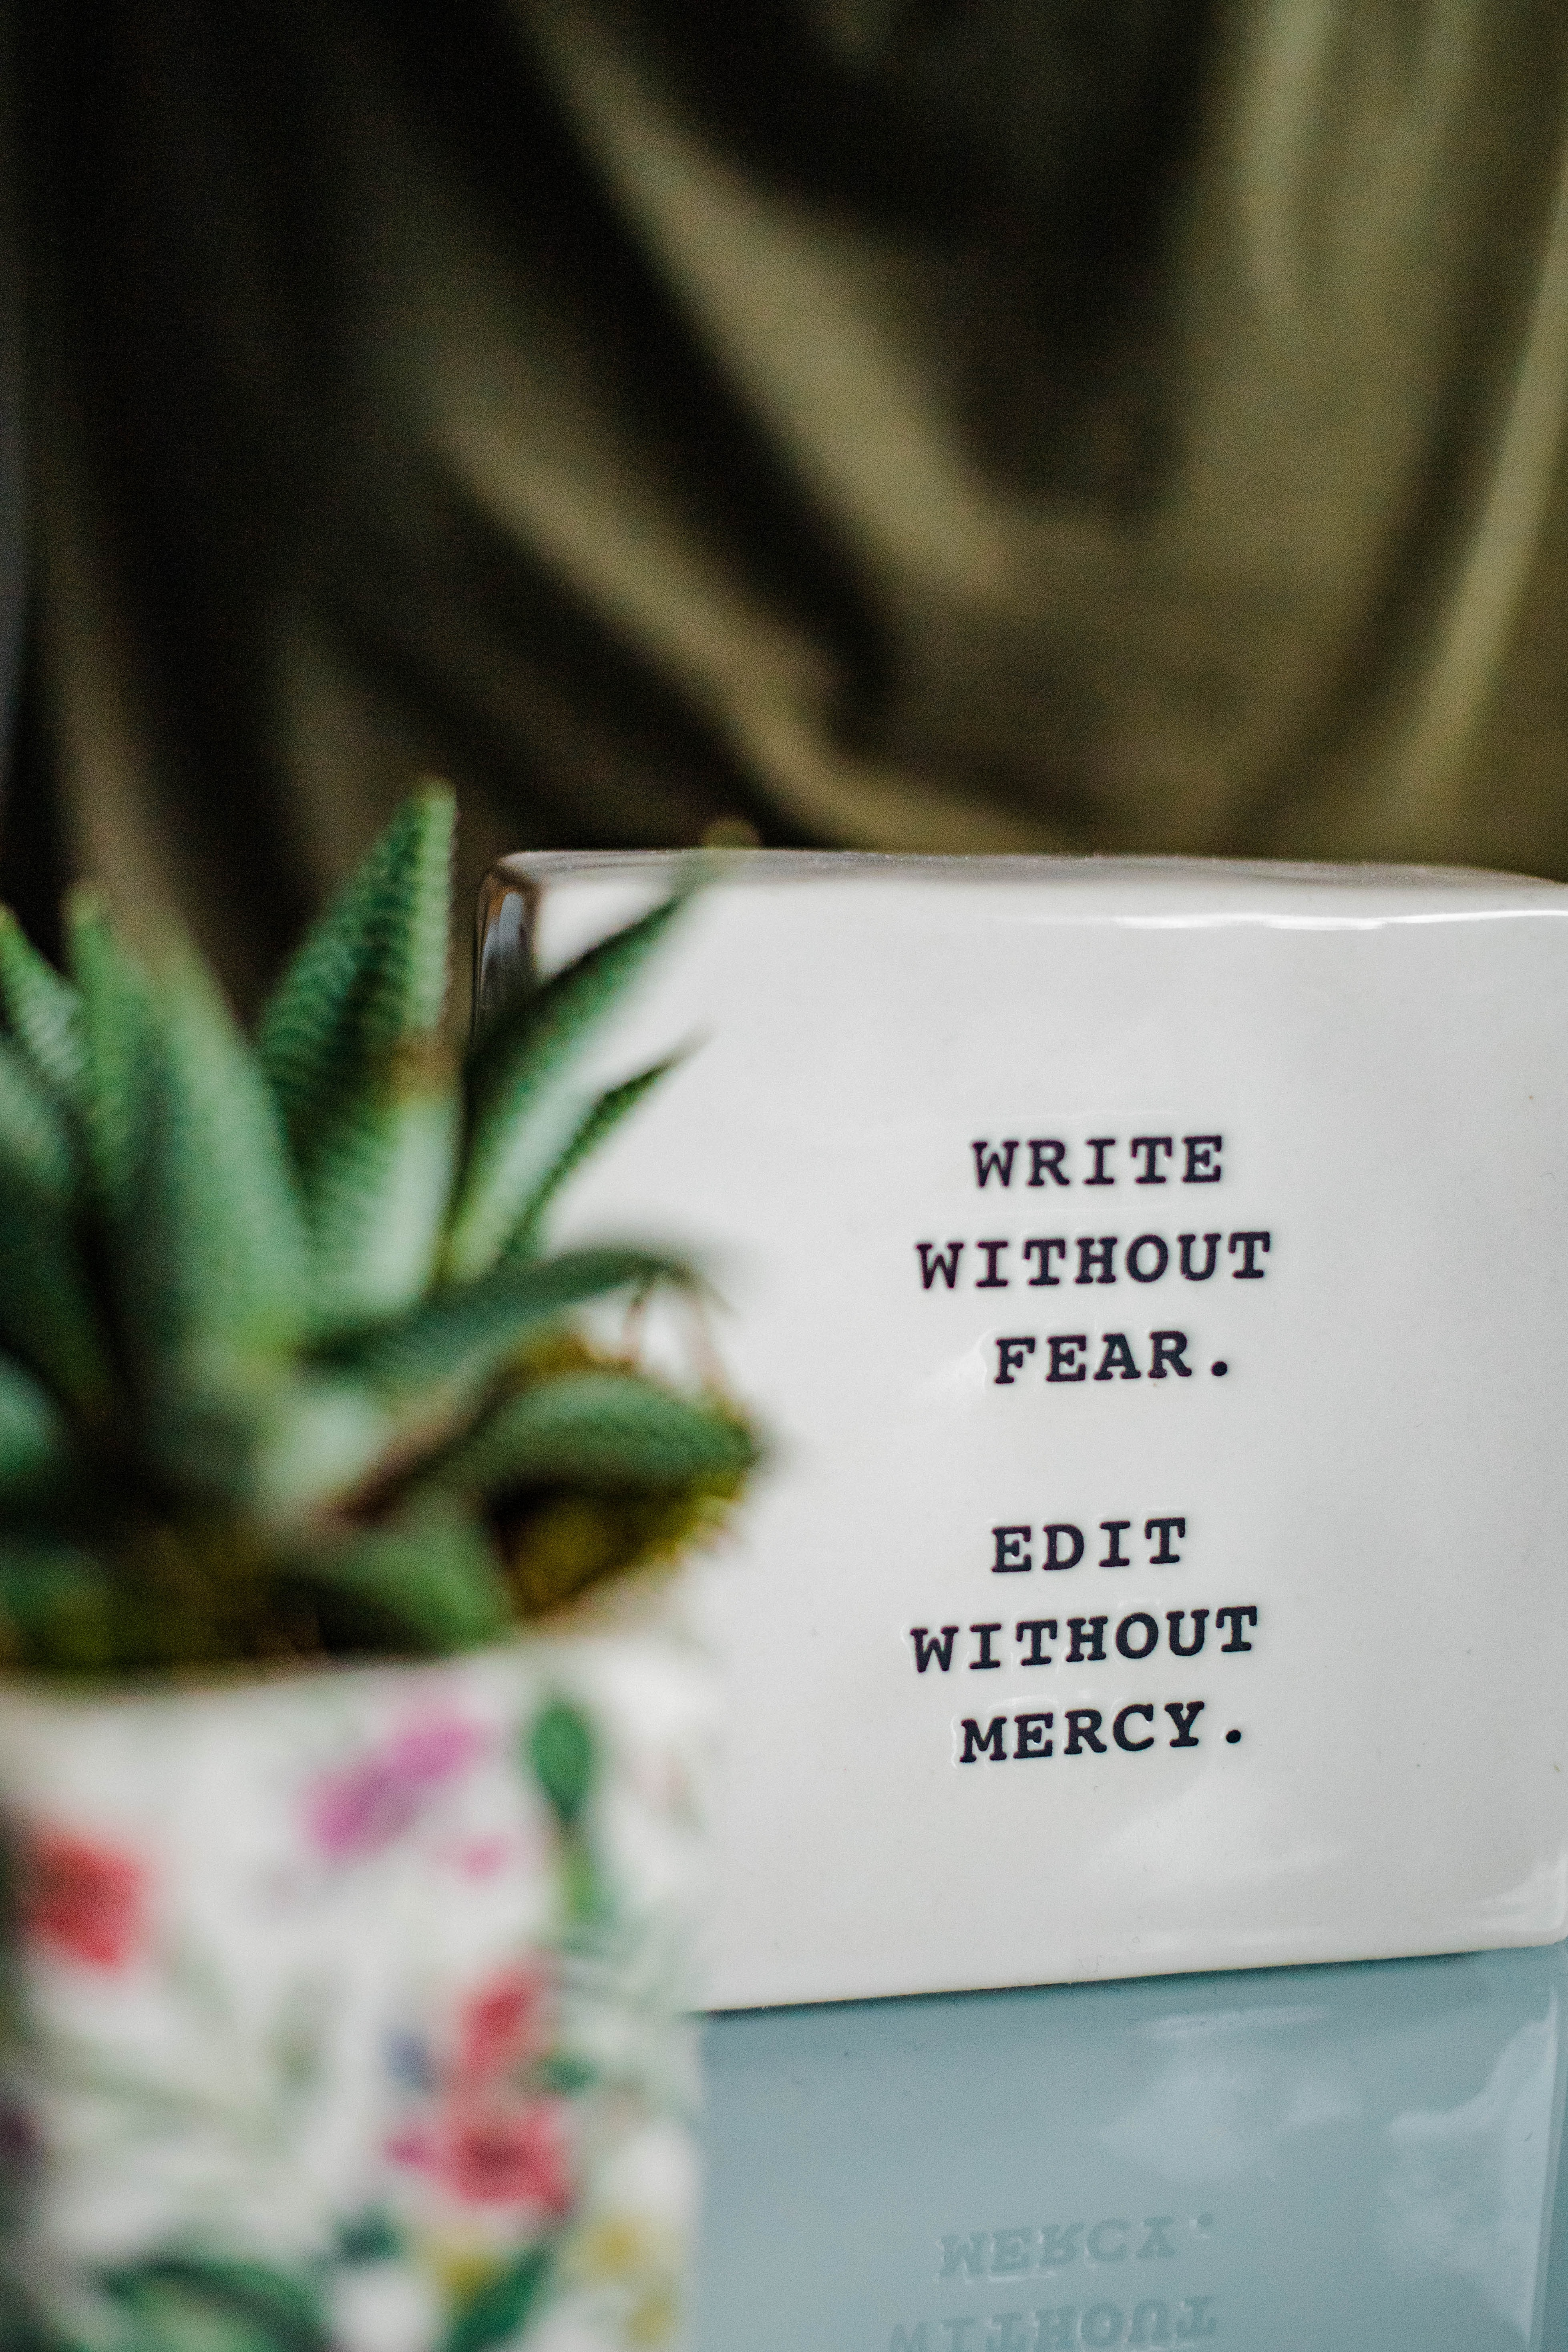 Creative Writing - Catch More Traffic to Site • GuruAlpha